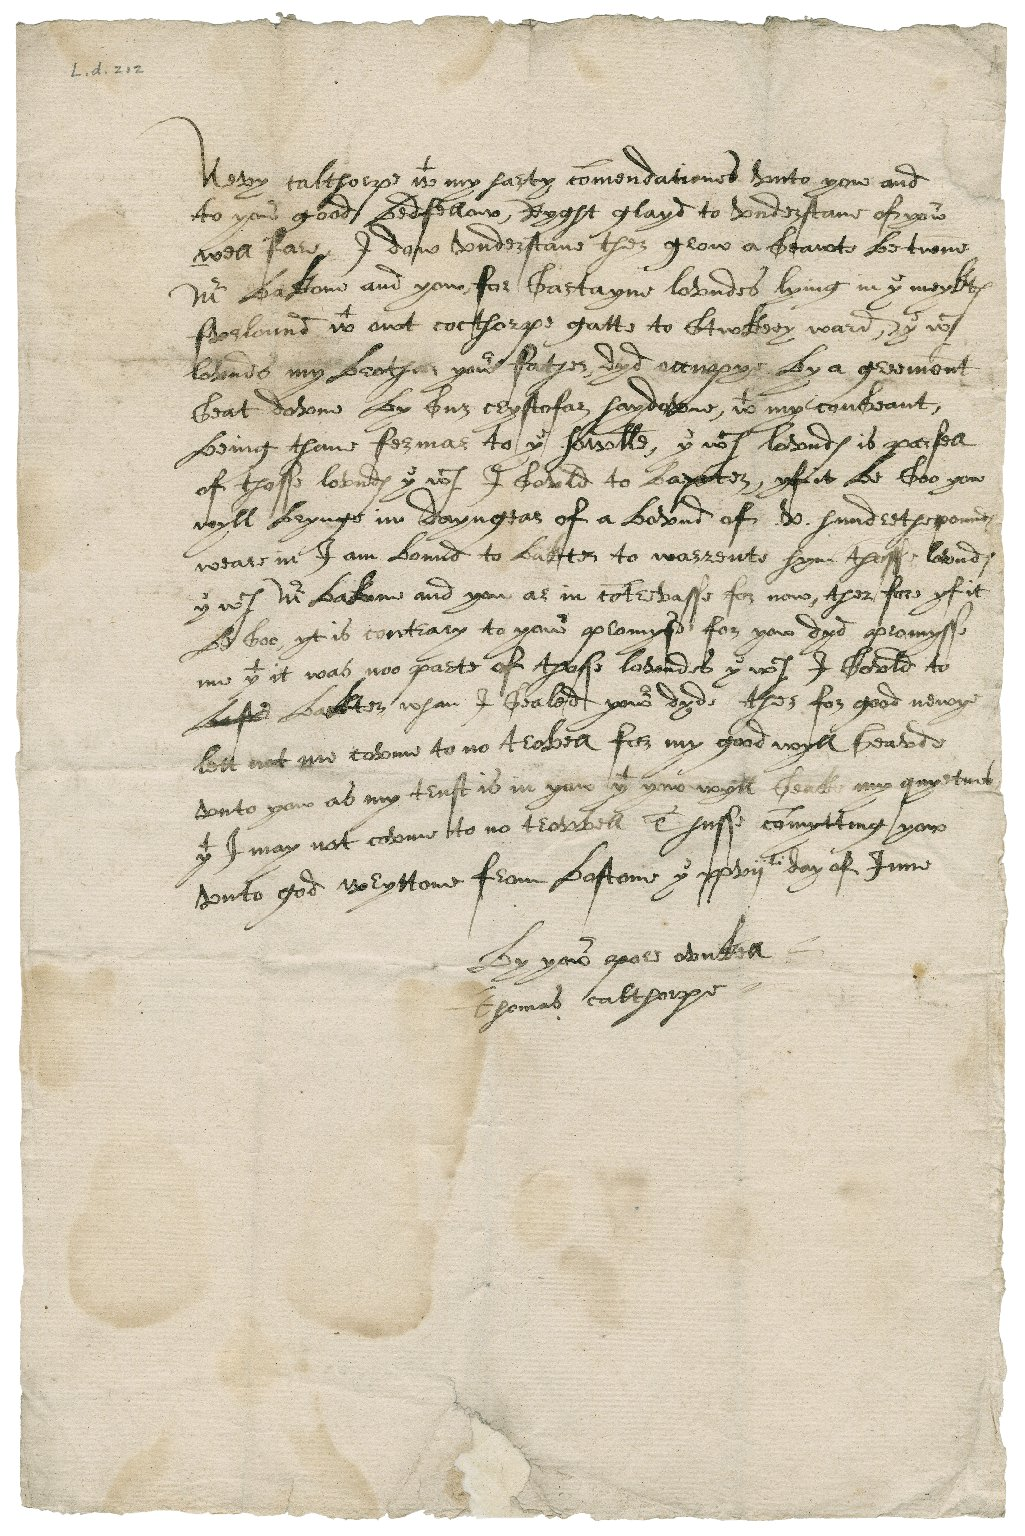 Letter from Thomas Calthorpe to James Calthorpe